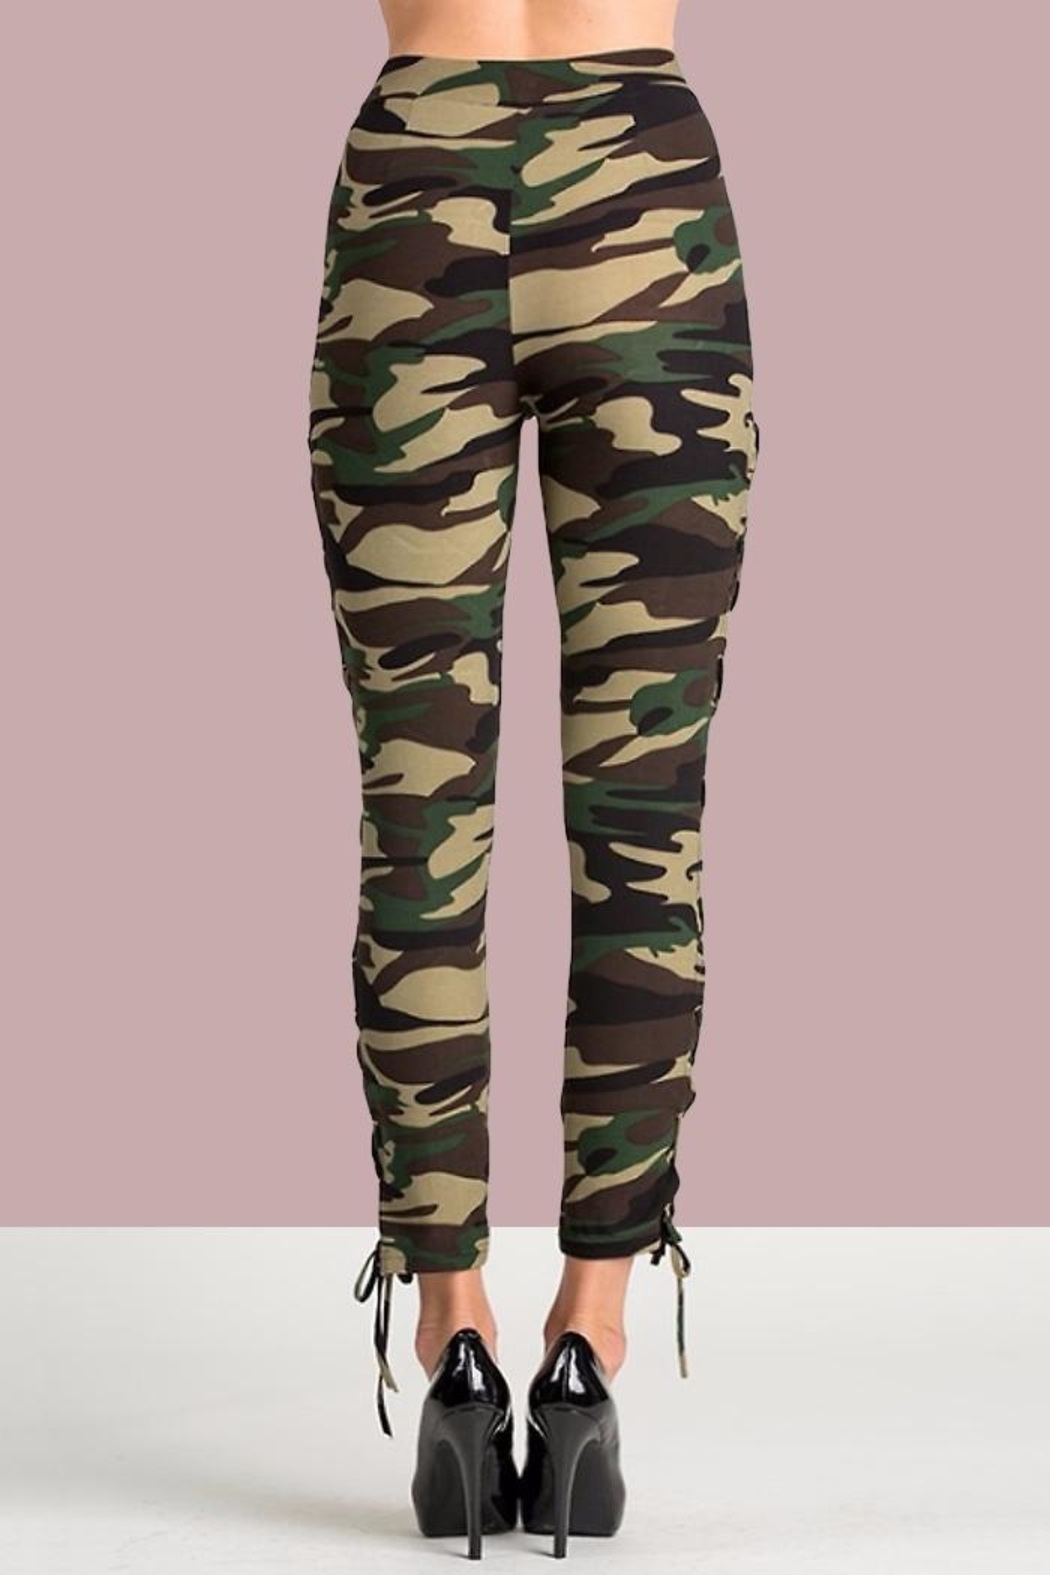 People Outfitter Camo Lace-Up Pants - Side Cropped Image